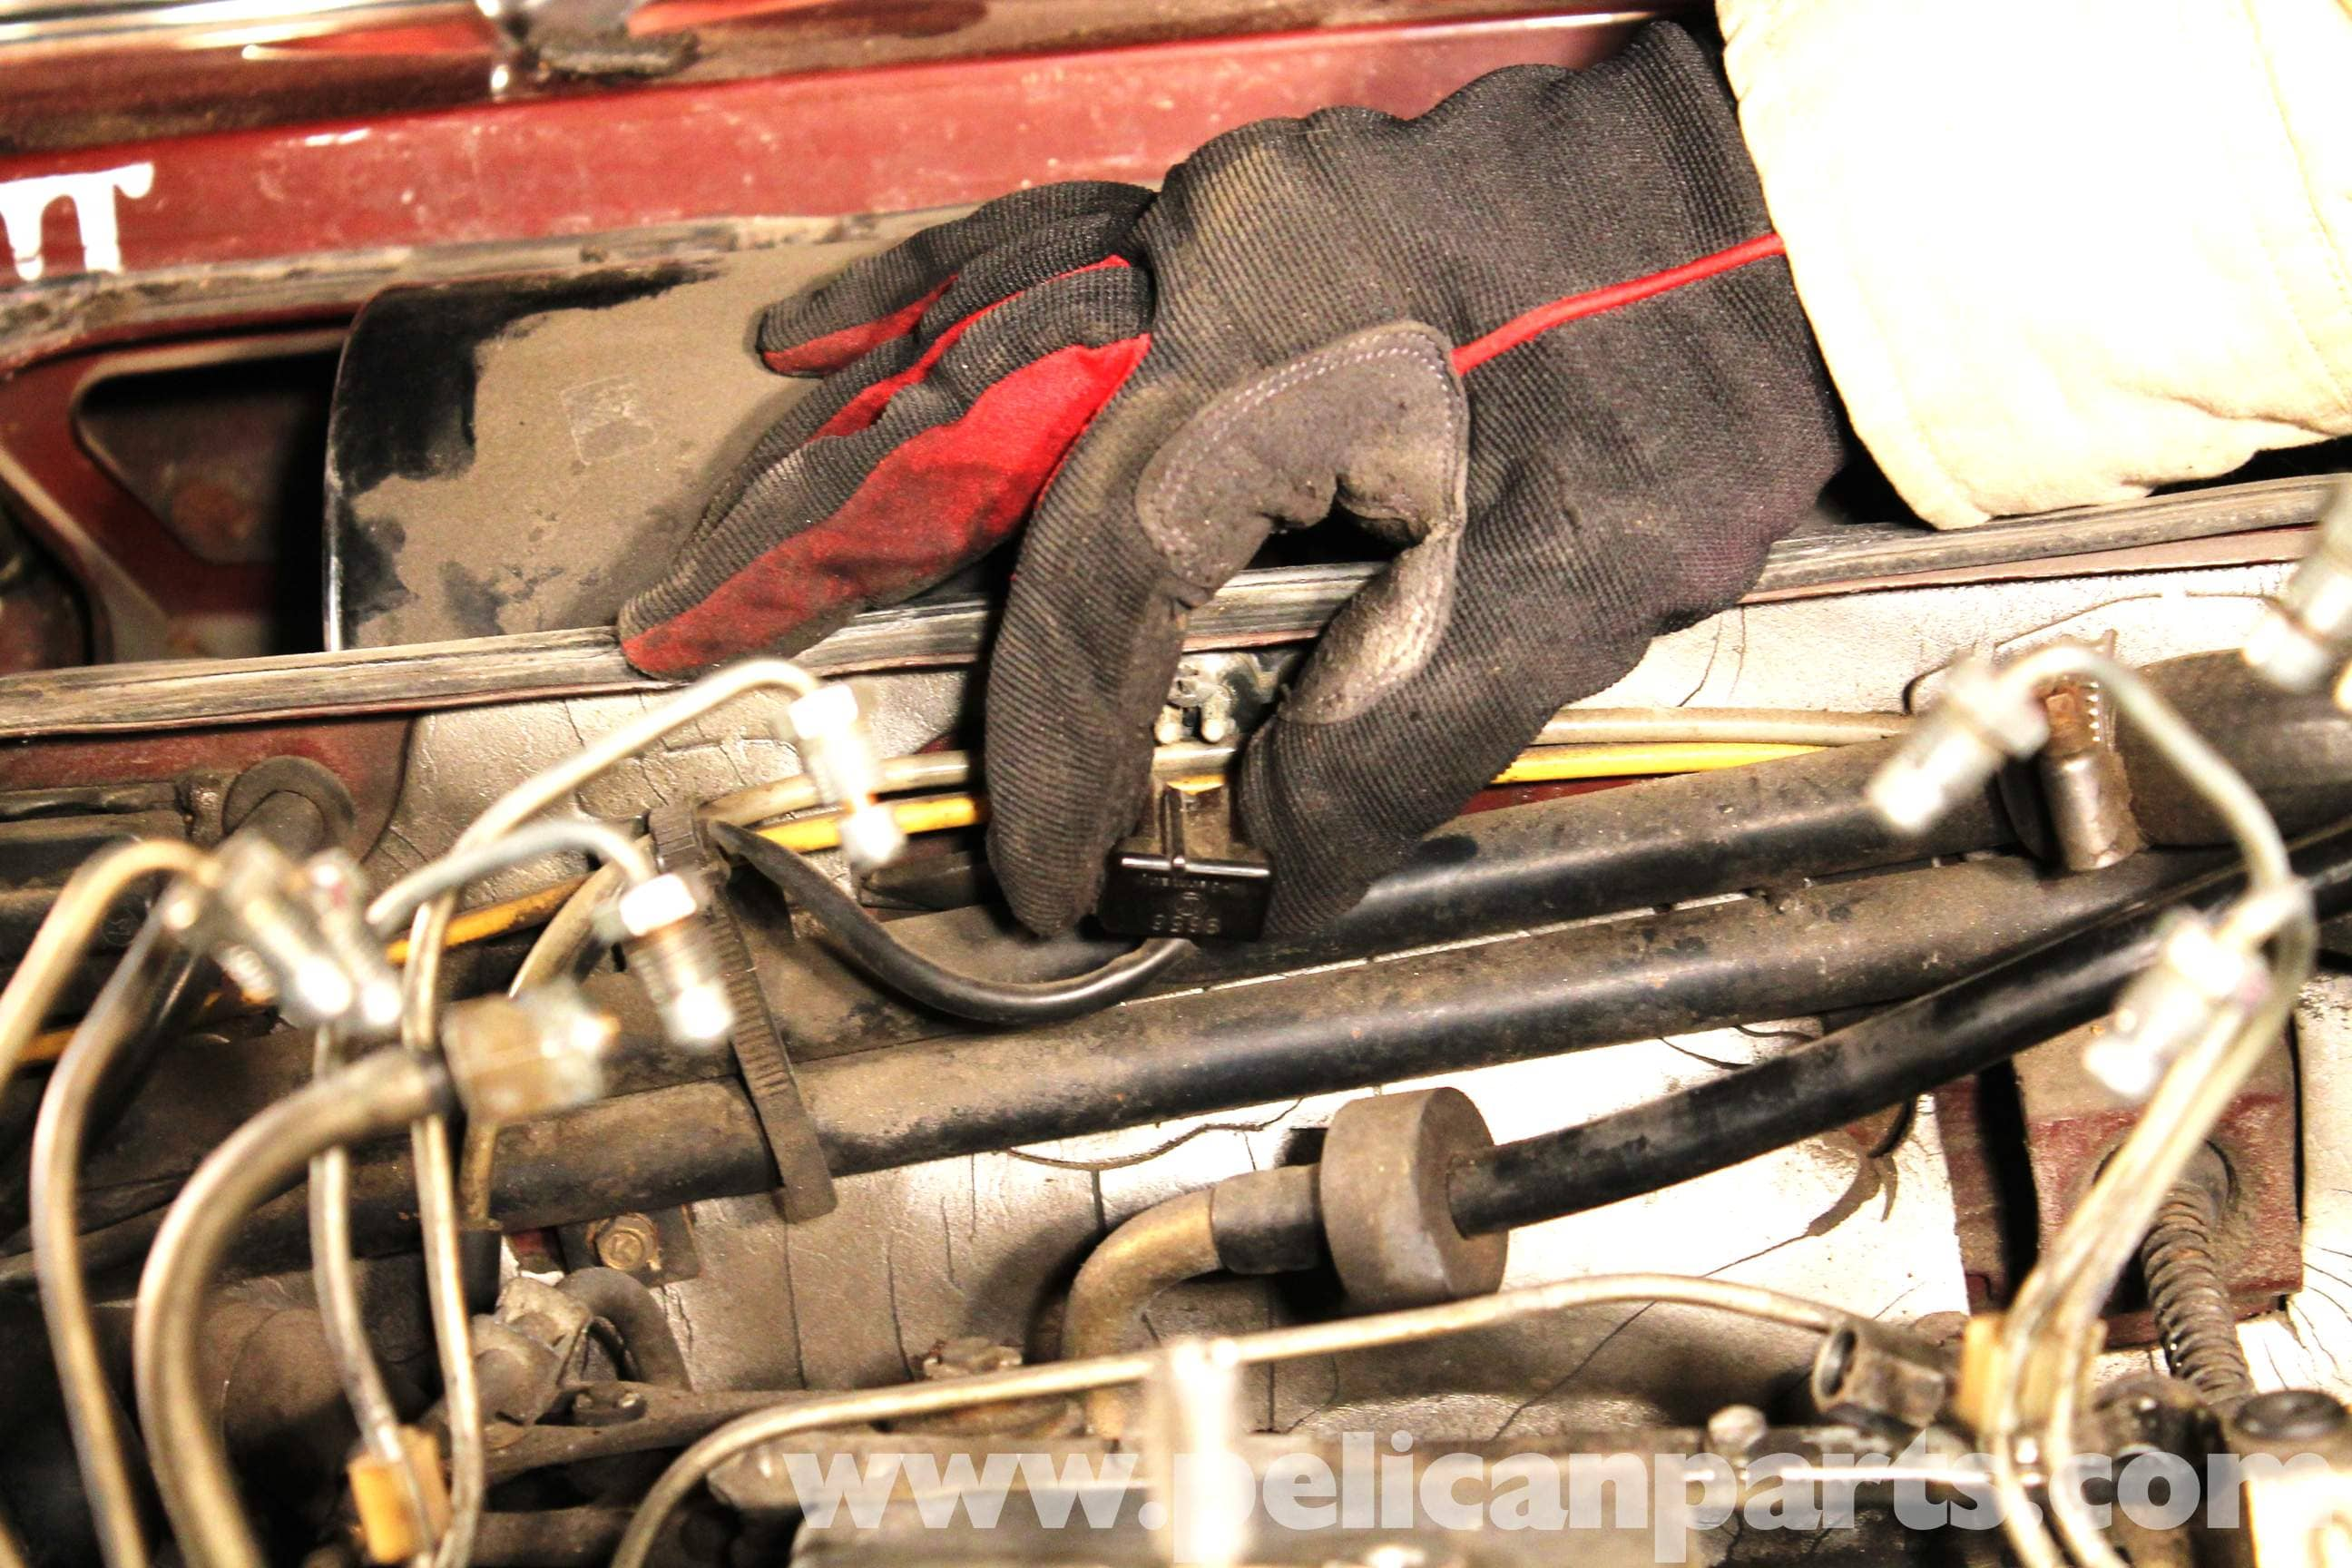 Mercedes-Benz R107 Heater Blower Motor Replacement | 1972-1986 ... on neutral safety switch replacement, oil pan gasket replacement, fuel pump replacement, pitman arm replacement, brake light switch replacement, map light bulb replacement, turn signal switch replacement, third brake light replacement, power window motor replacement, timing chain replacement, camshaft position sensor replacement, fuel injector replacement, hood release cable replacement, timing belt tensioner replacement, windshield wiper arm replacement, cigarette lighter socket replacement, catalytic converter replacement,